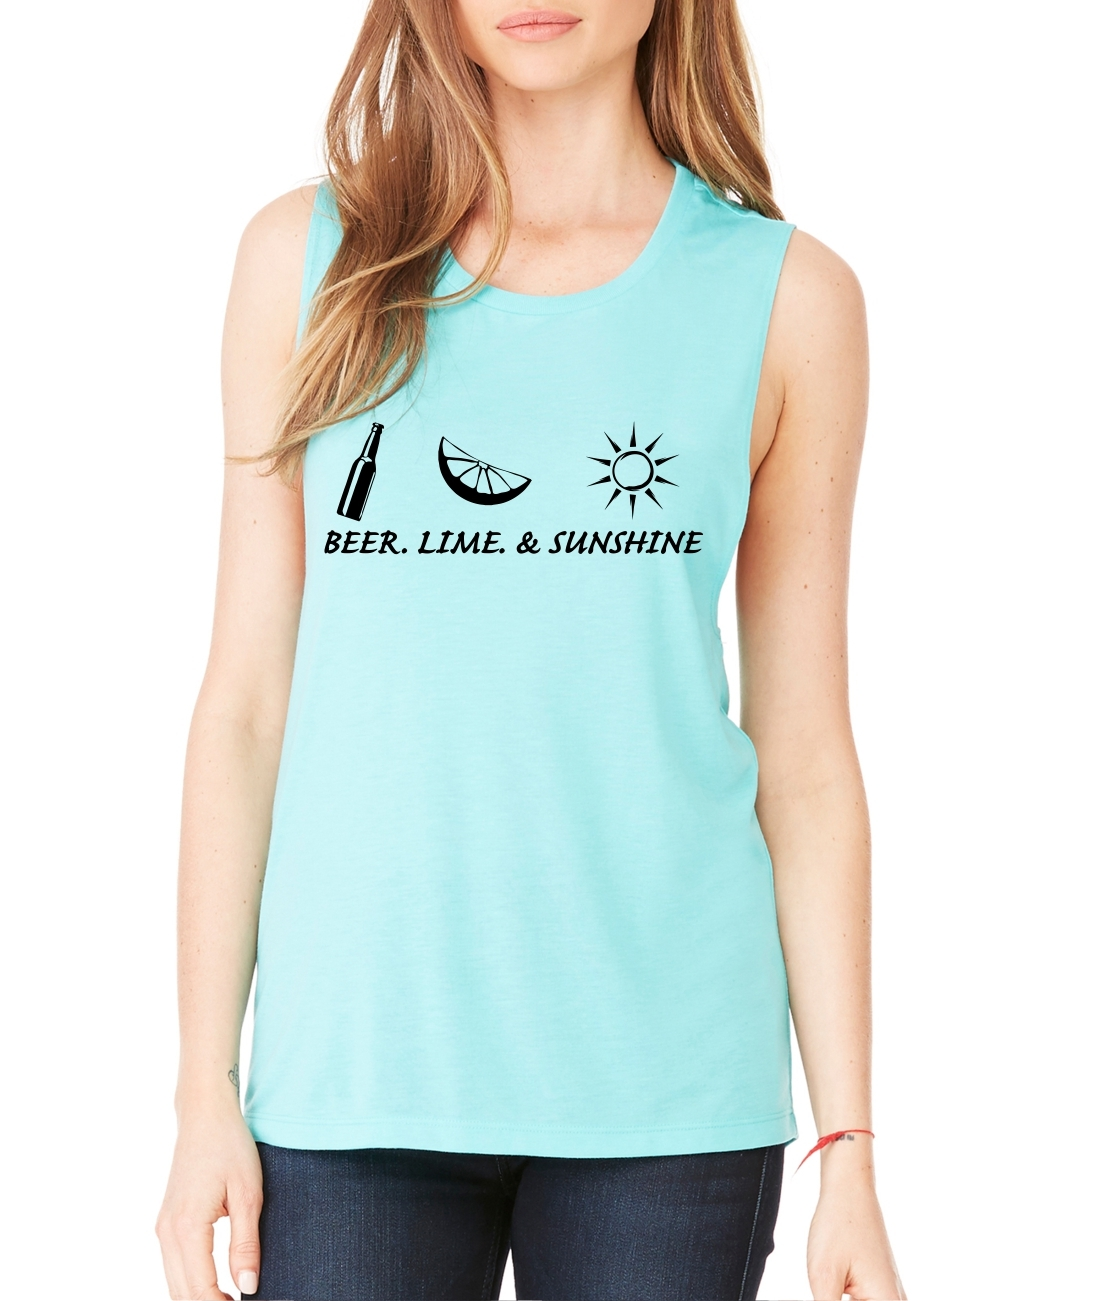 Women's Flowy Muscle Top Beer Lime And Sunshine Summer Party